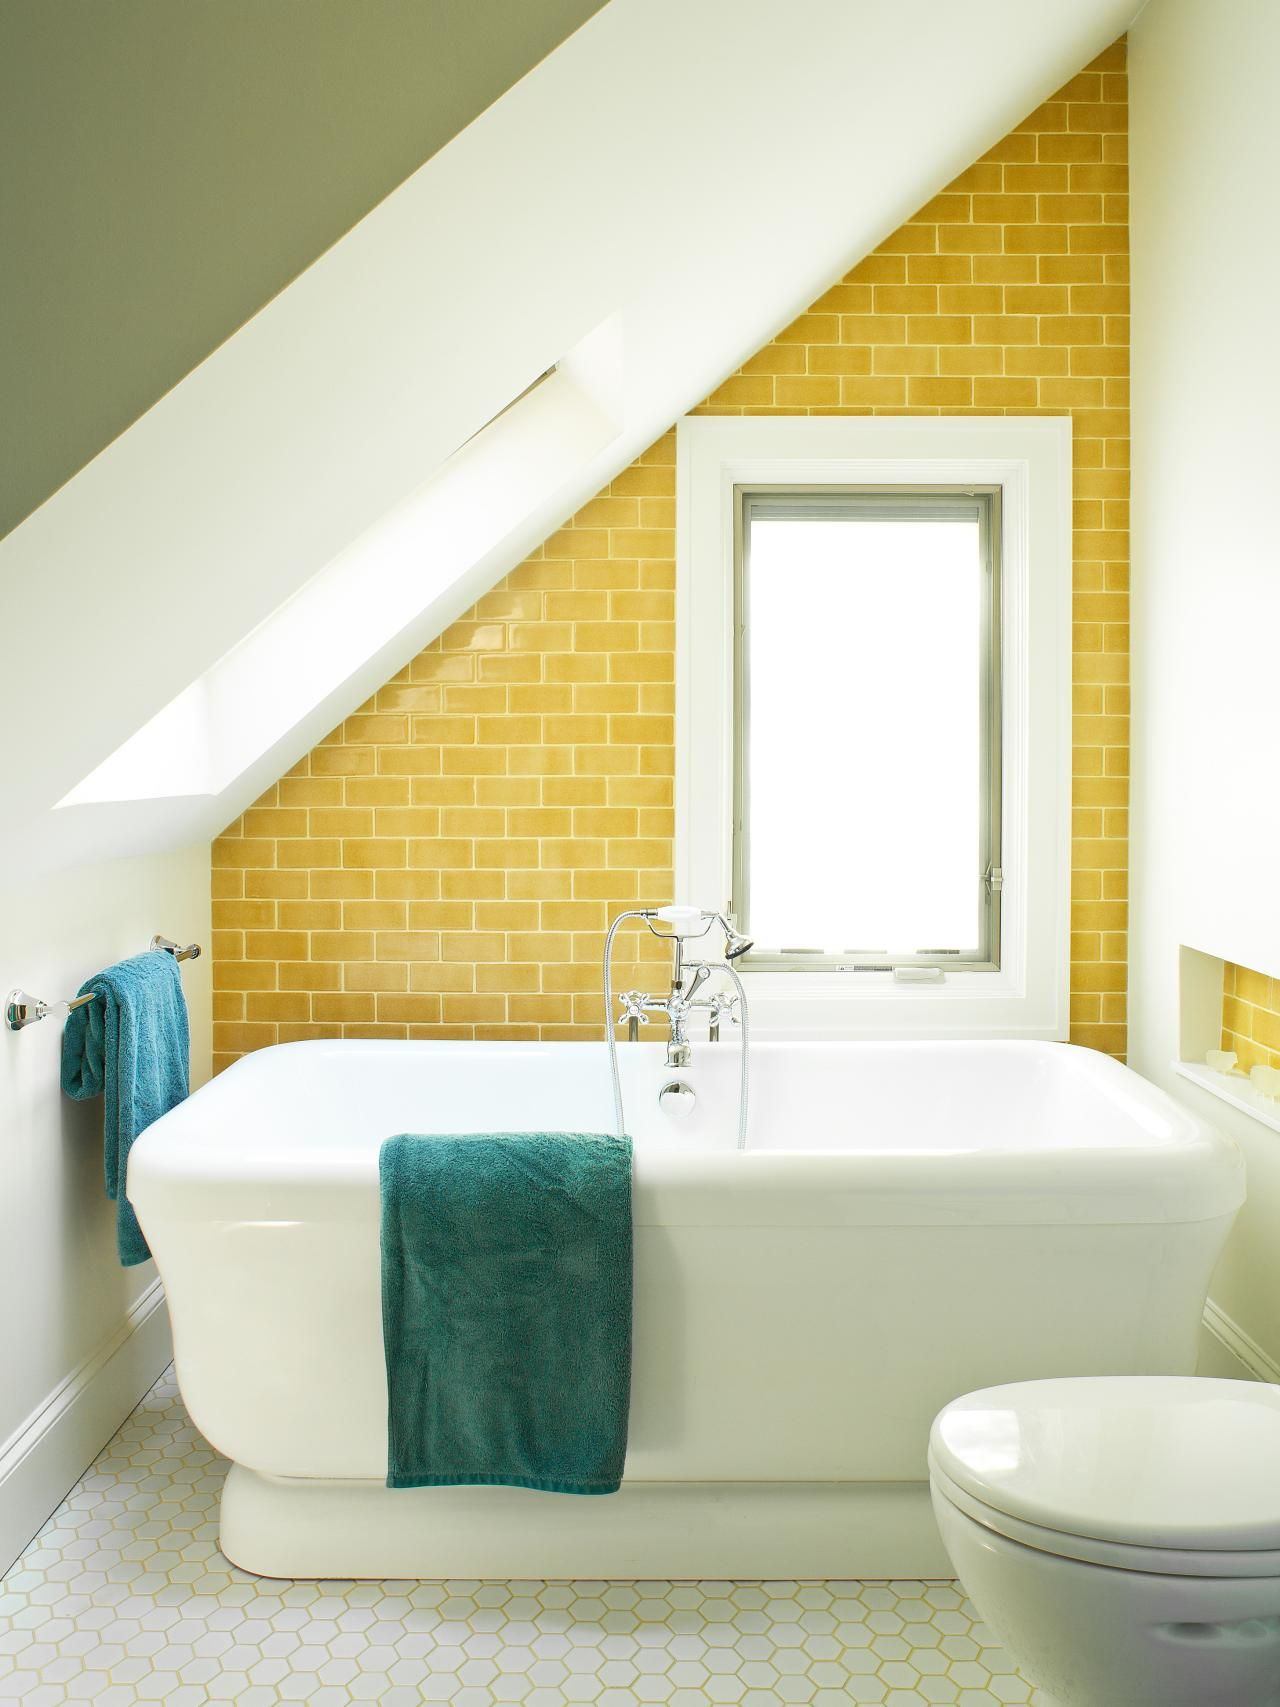 5 Fresh Bathroom Colors to Try in 2017 | Camera roll, Bathtubs and Hgtv